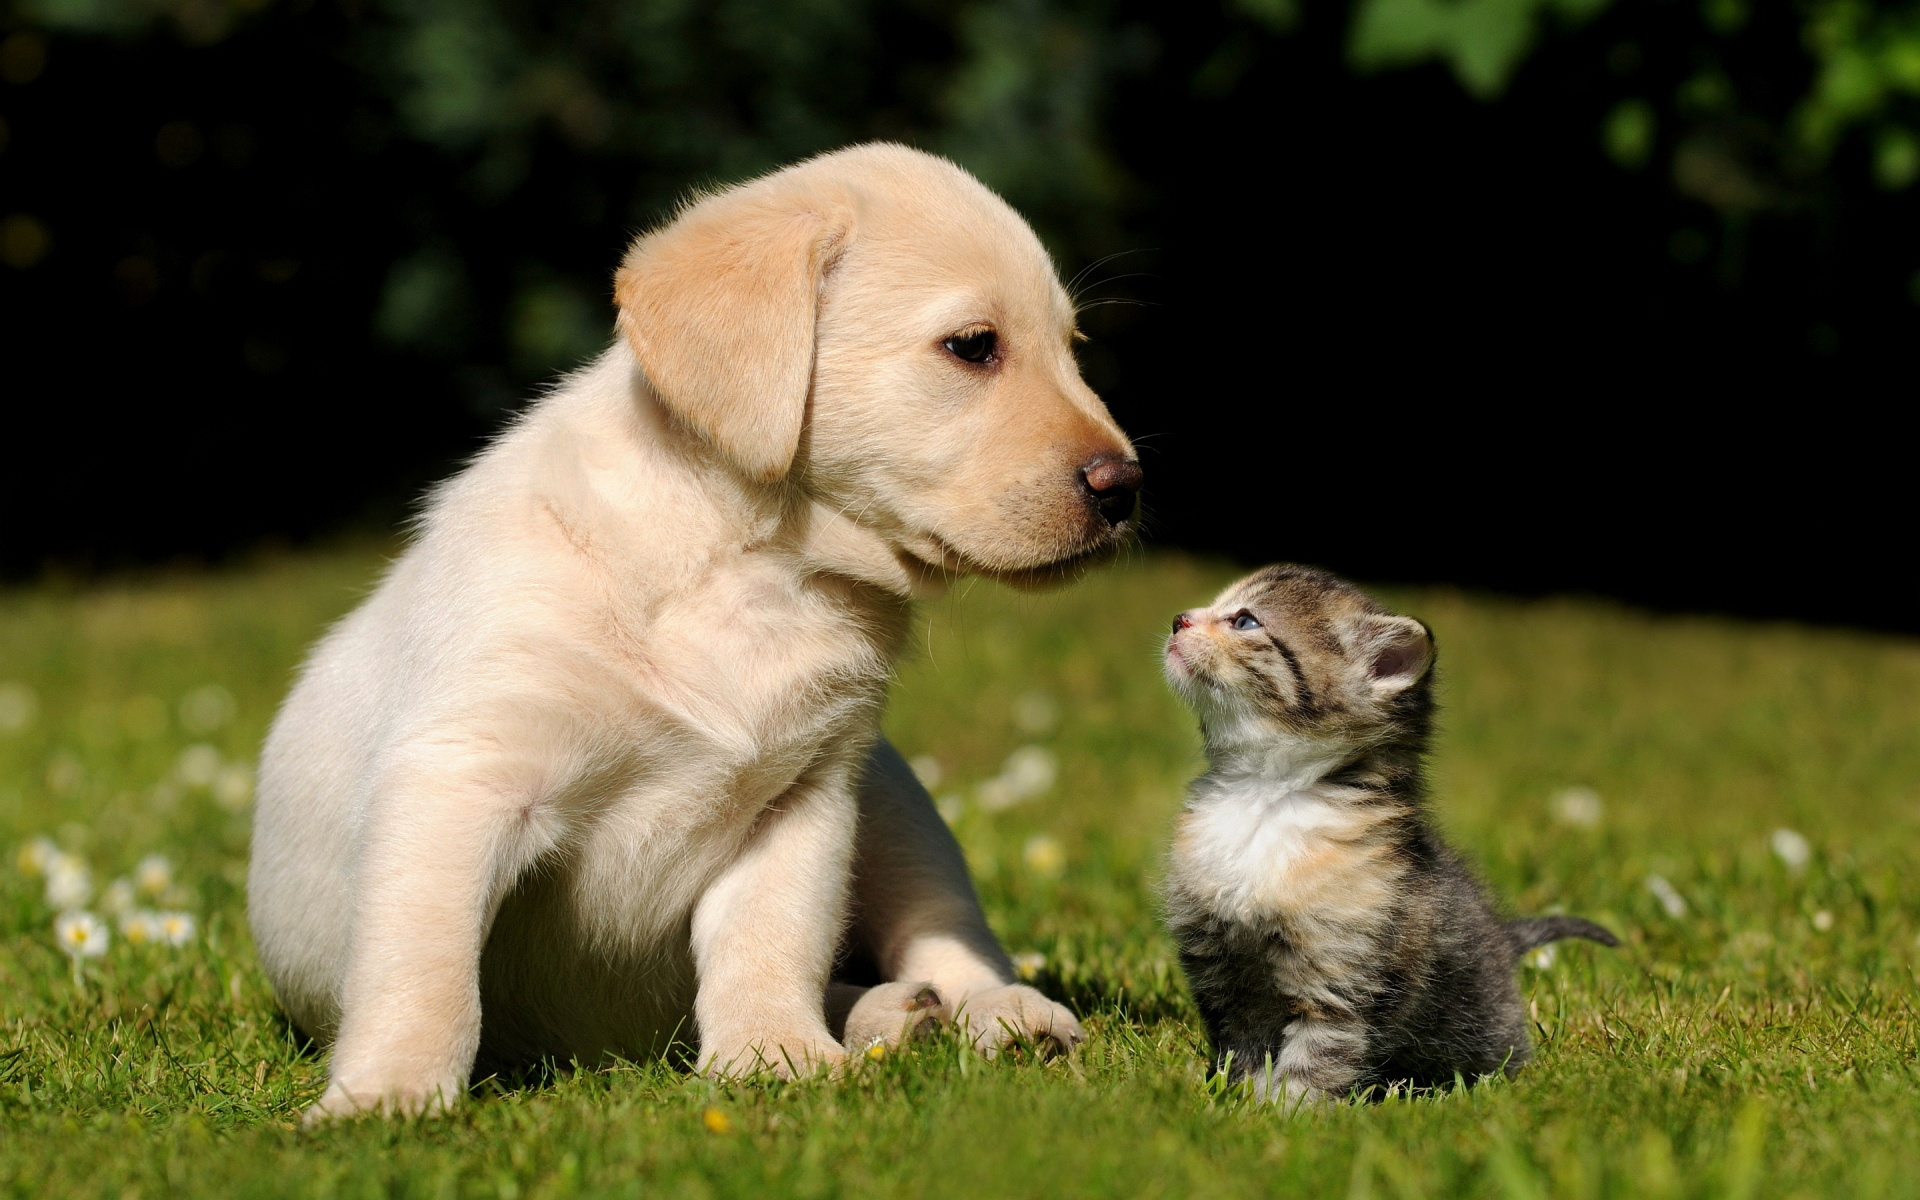 pictures of cute animals